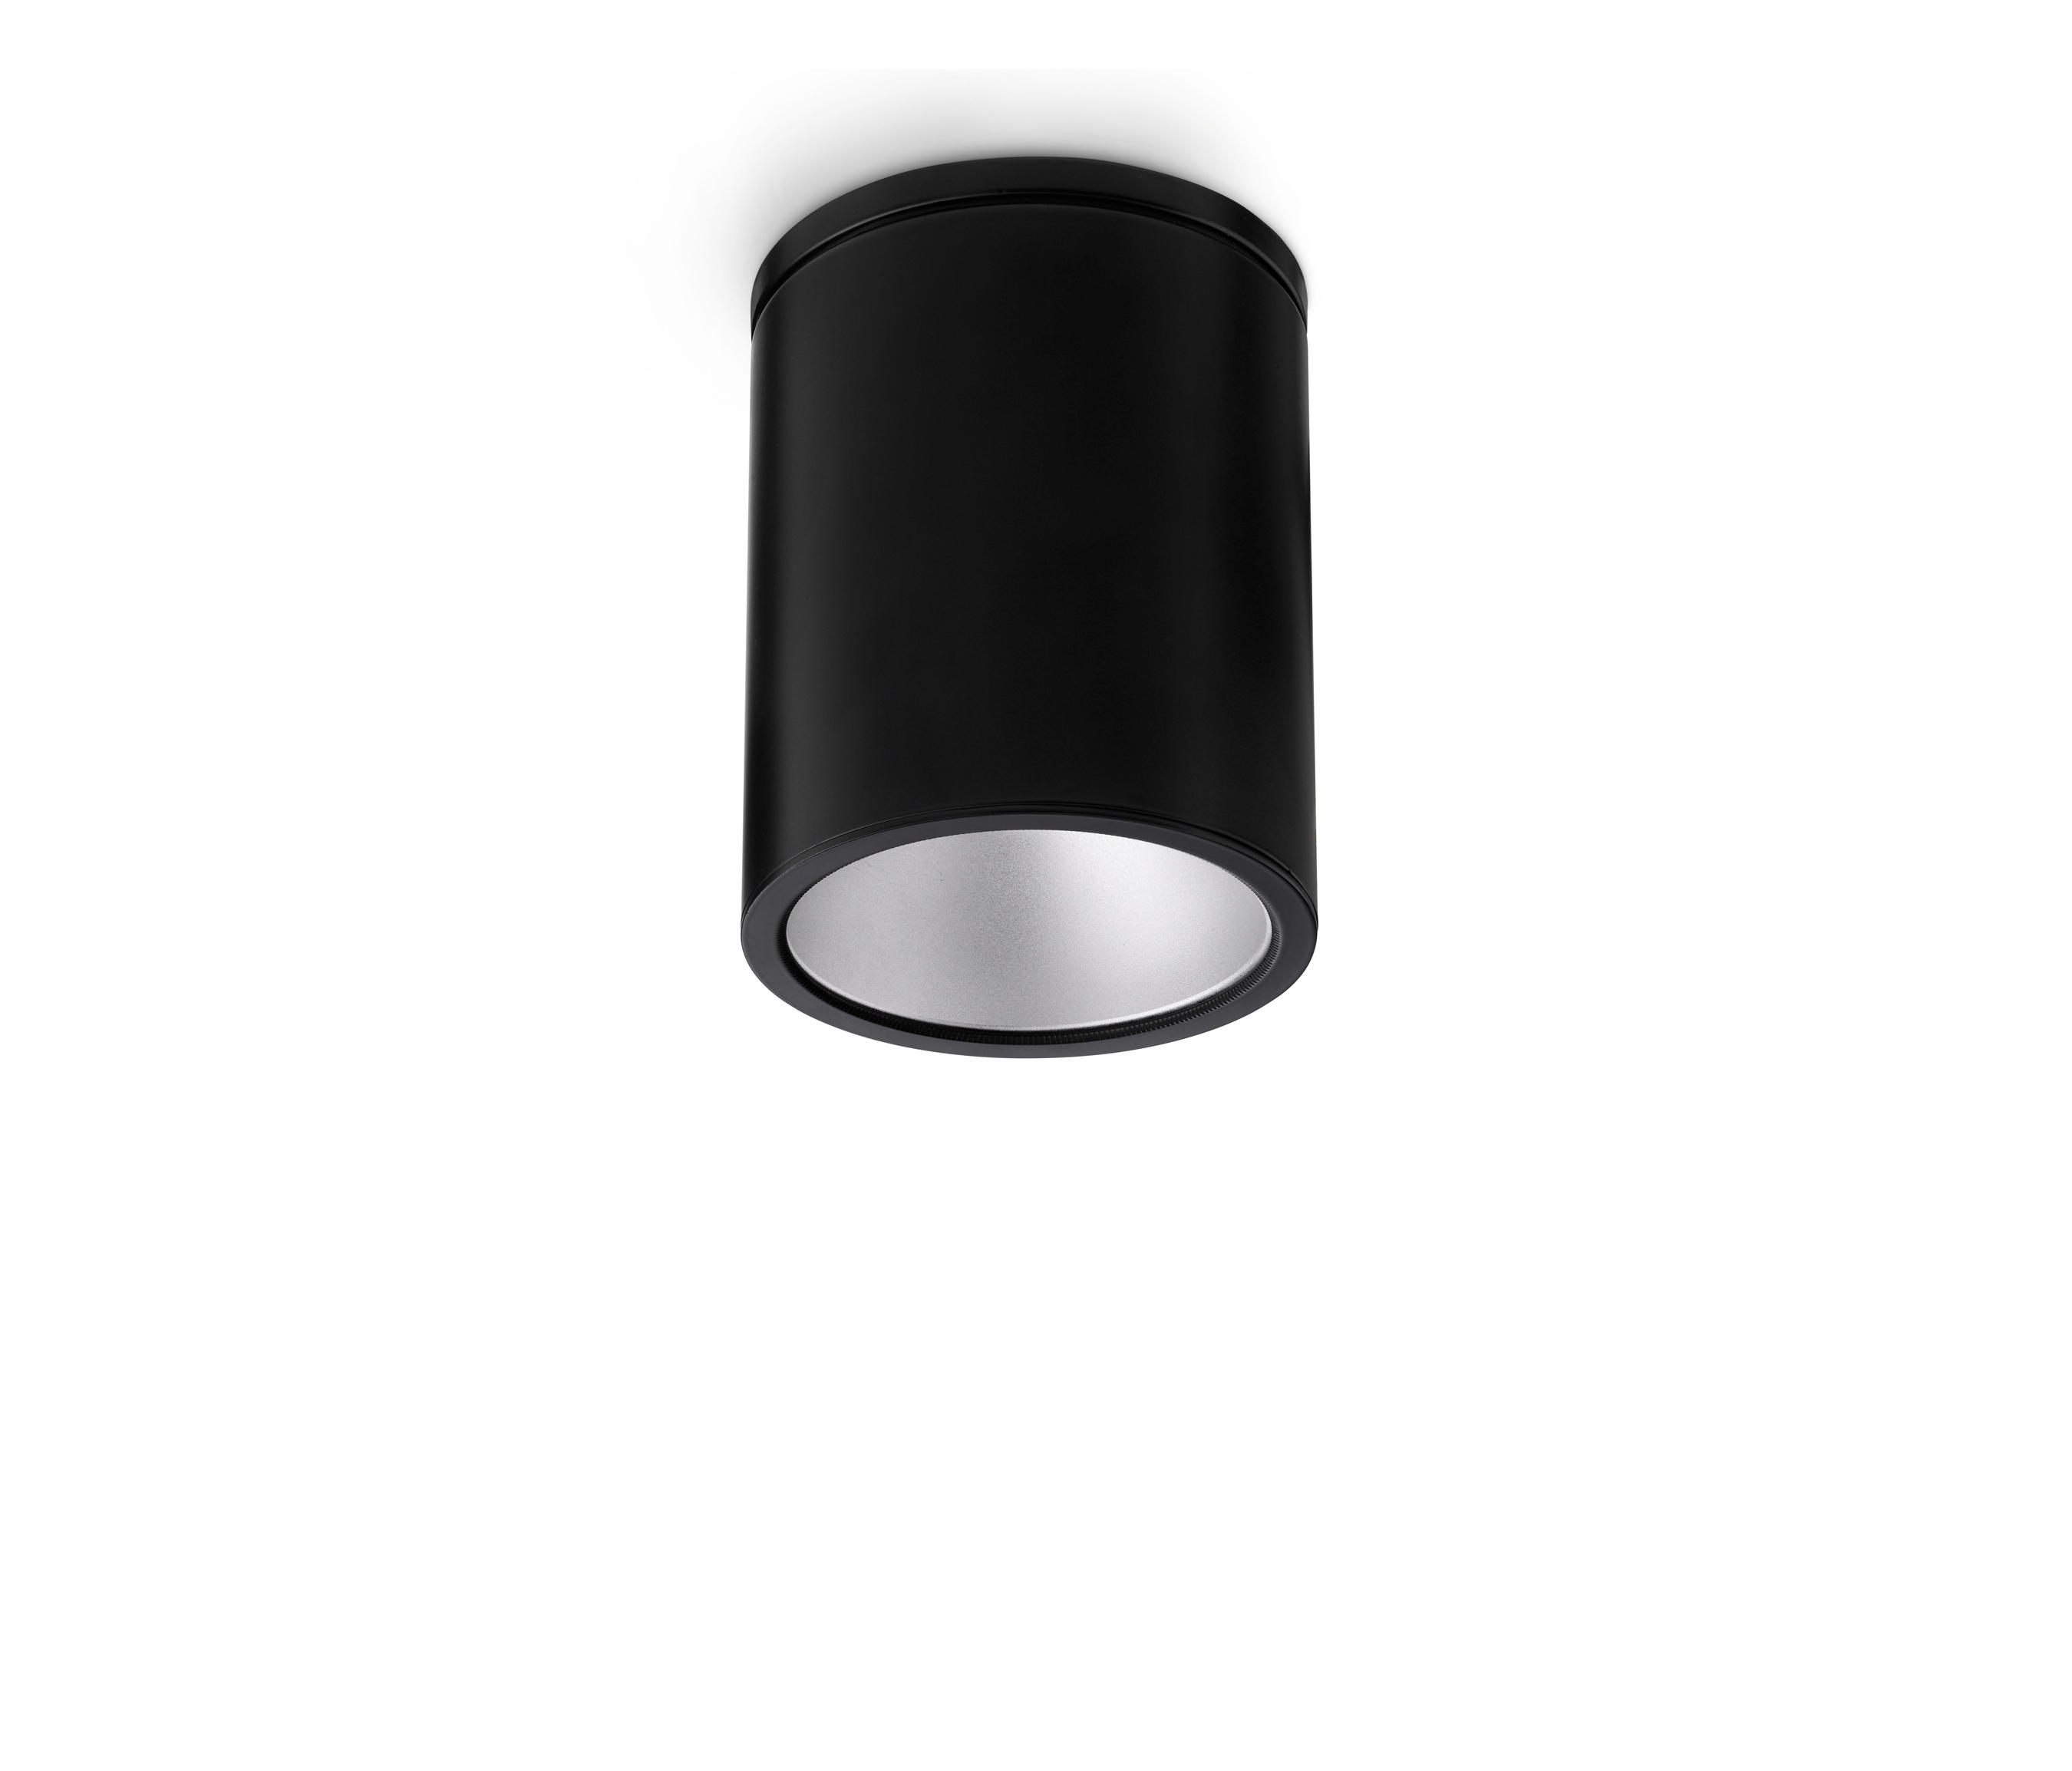 Cyled Ceiling Lights From Reggiani Architonic